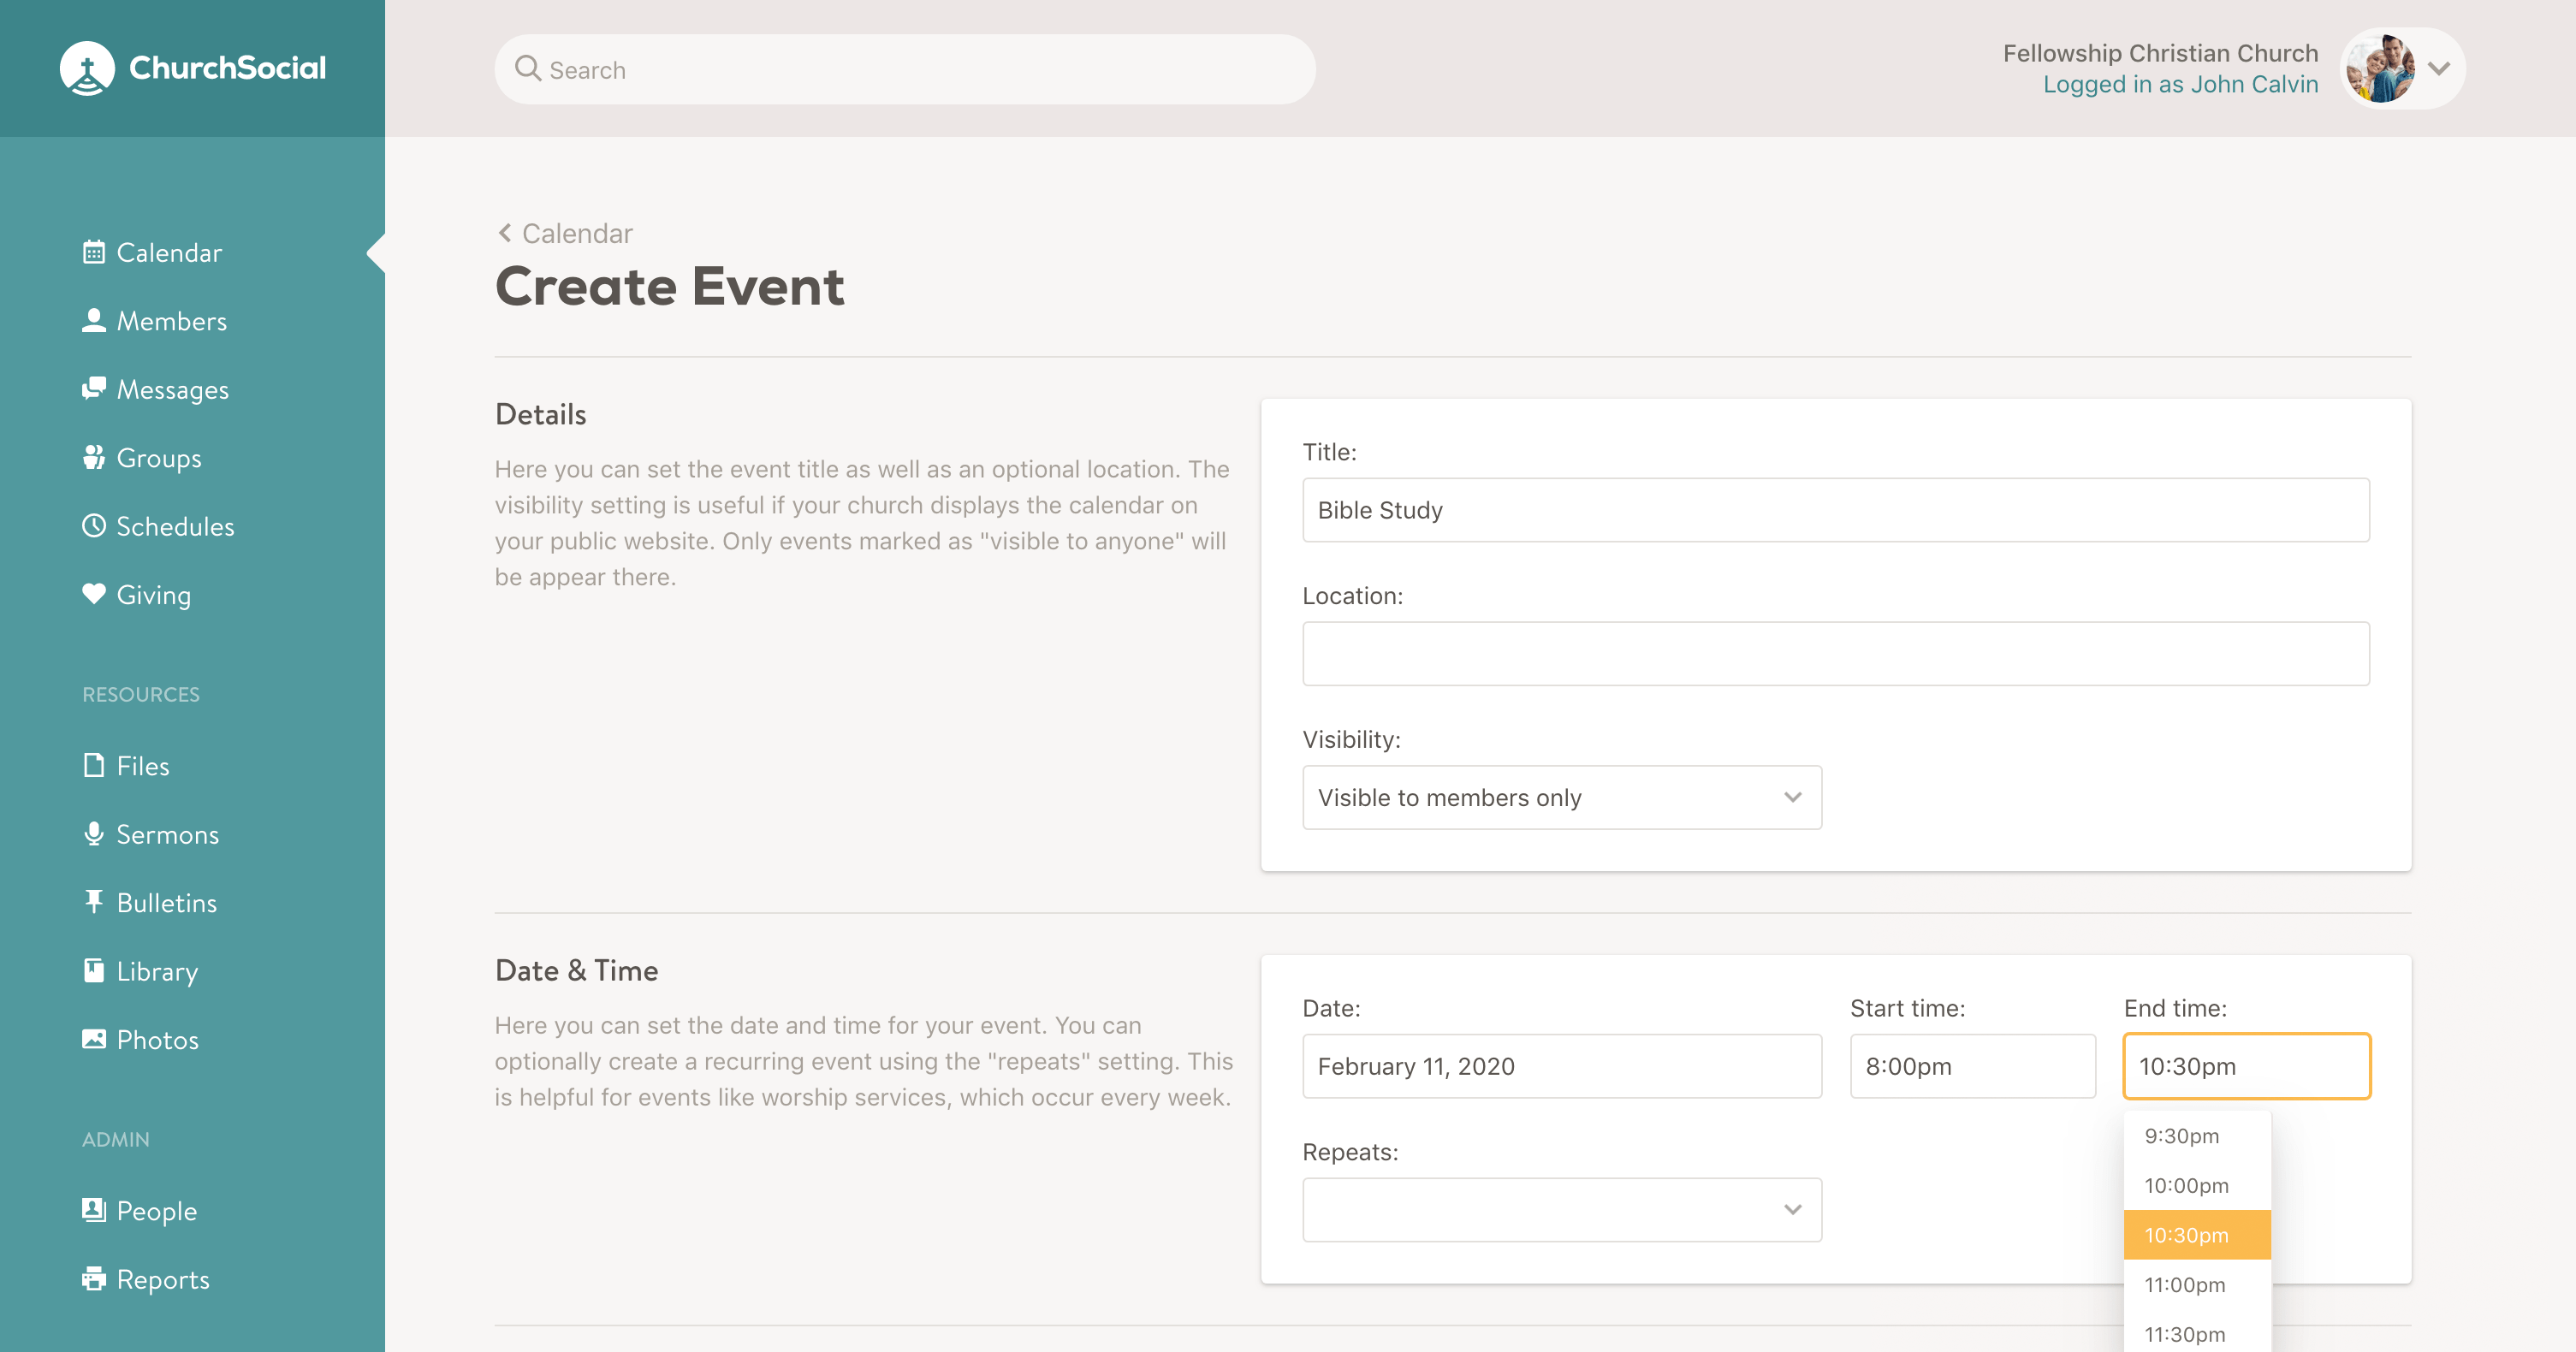 Screenshot of the end time option on the create event page